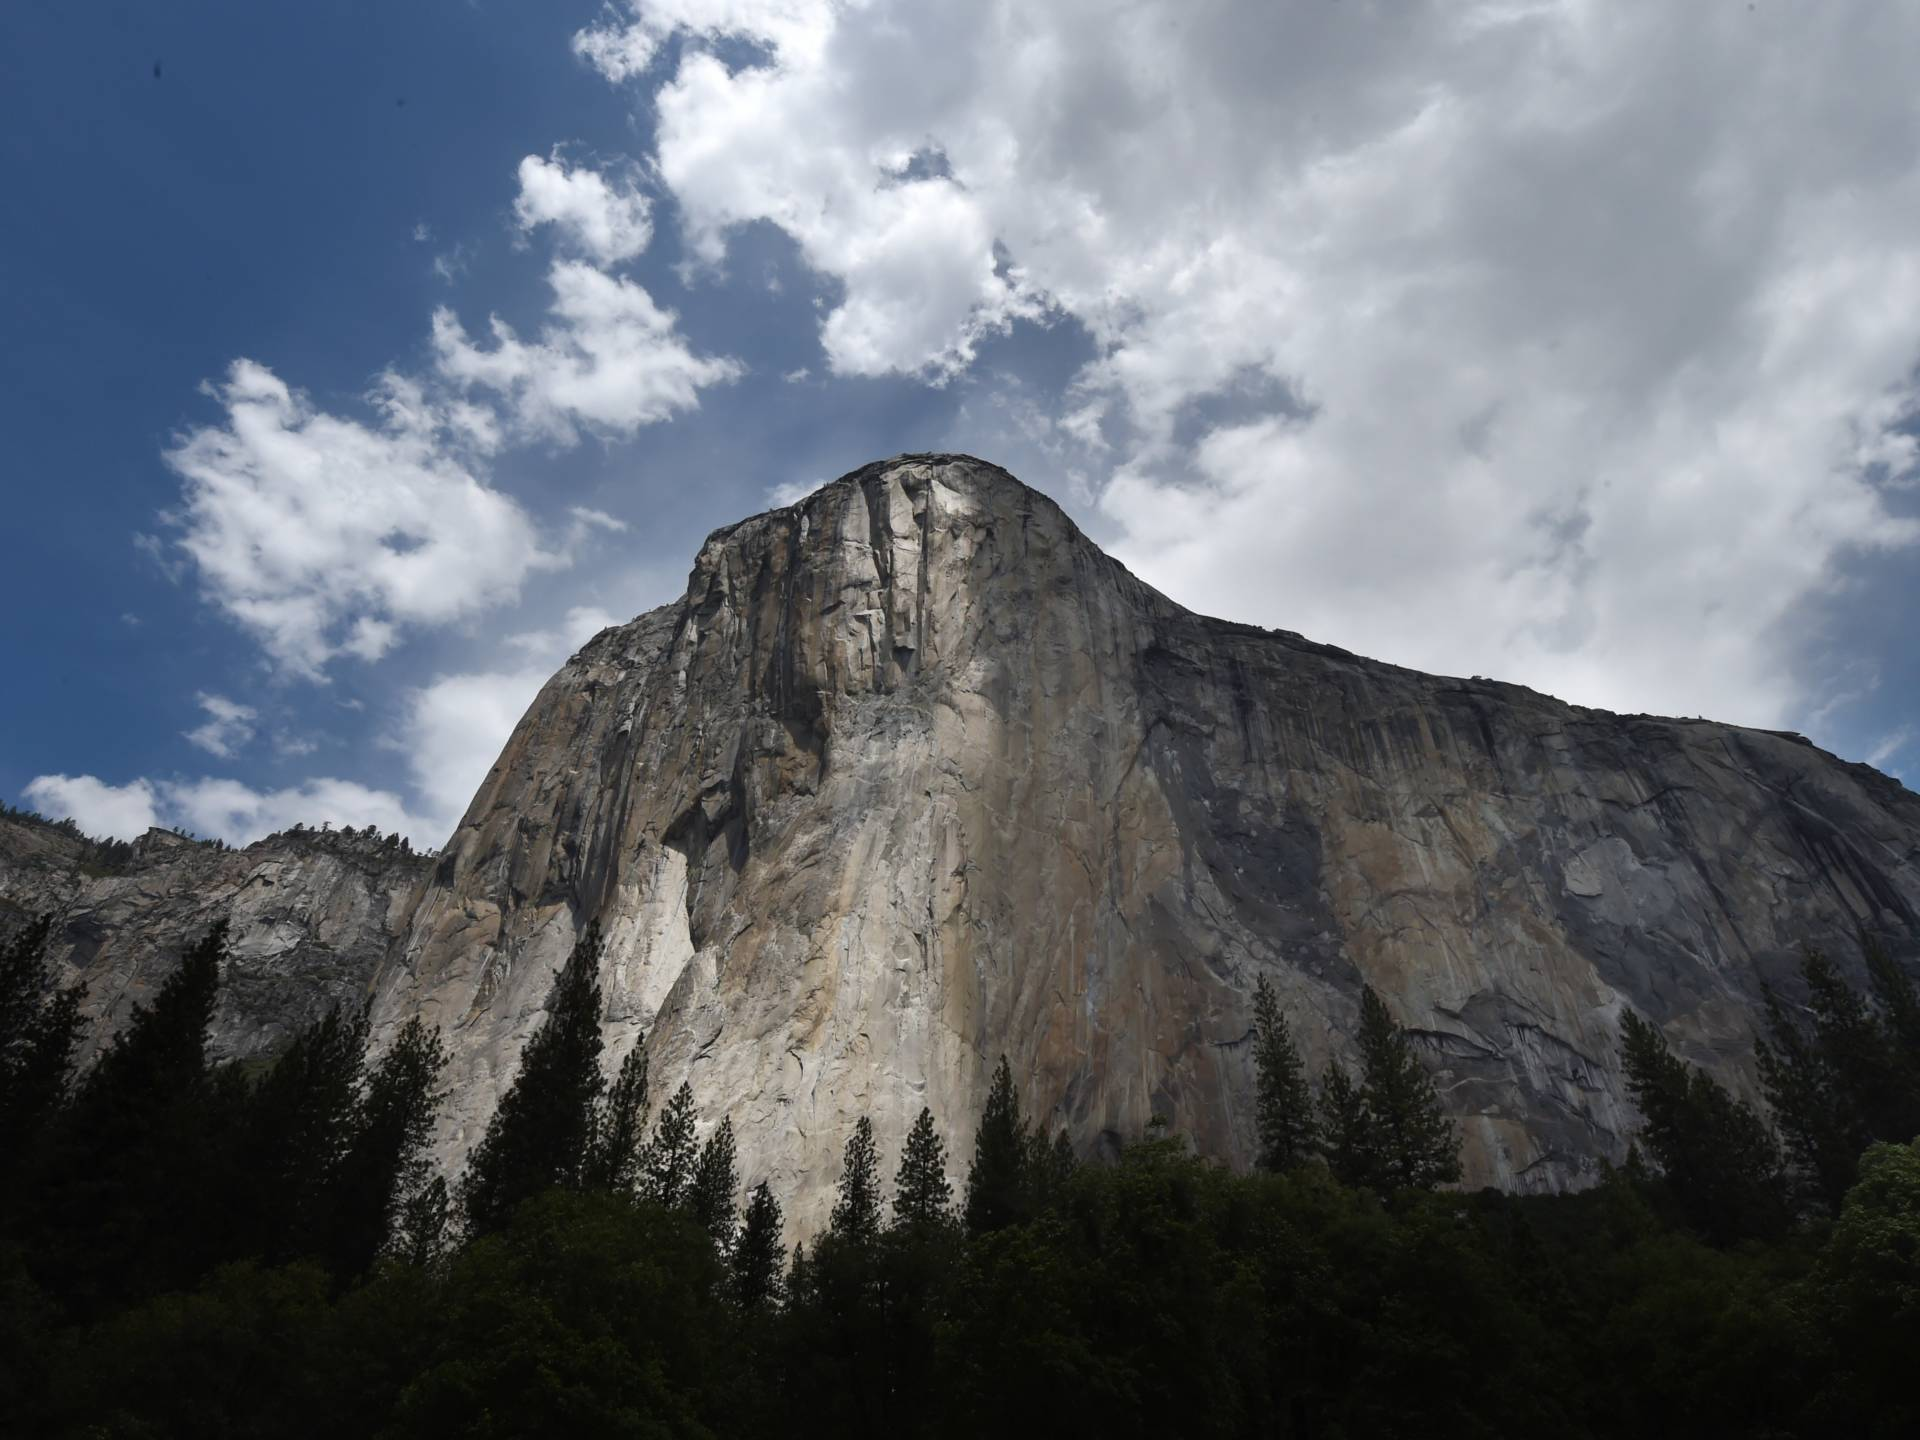 """The El Capitan monolith in Yosemite National Park, seen in June 2015. On Wednesday, climbers Alex Honnold and Tommy Caldwell managed a feat in under two hours that most climbers take days to achieve — scaling the famous """"Nose"""" route up the rock. Mark Ralston/AFP/Getty Images"""